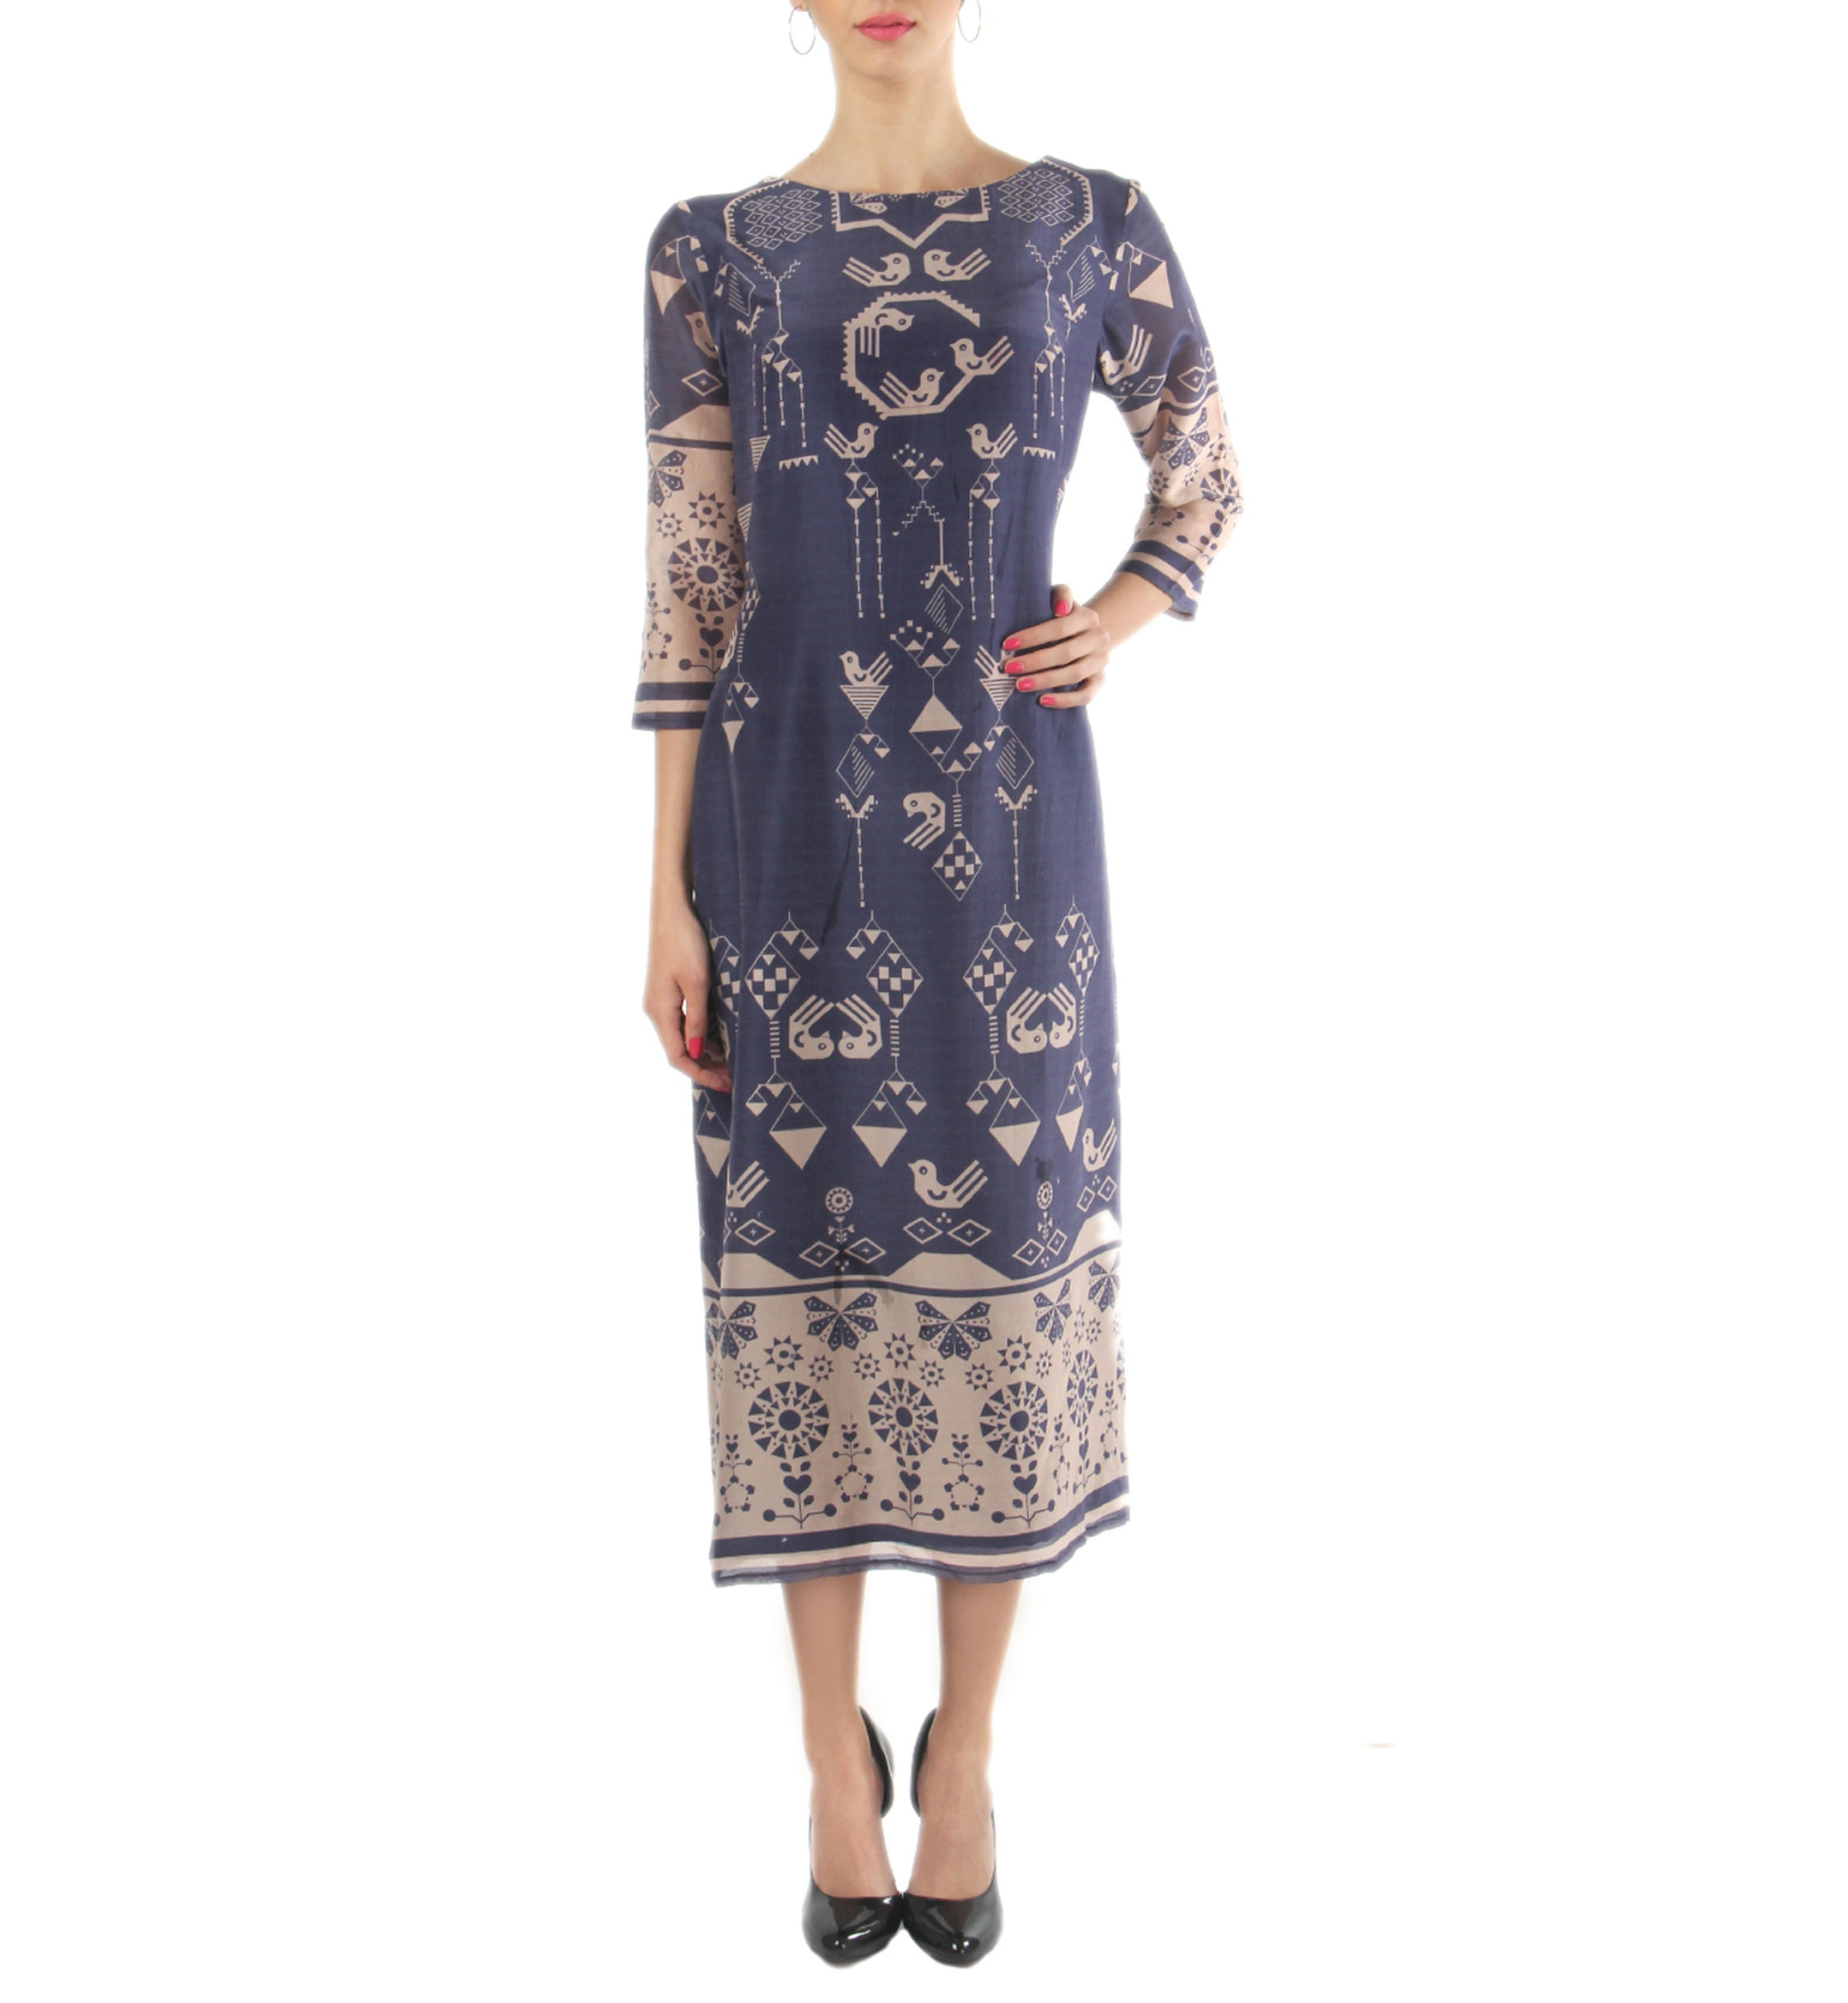 Navy and beige ankle length dress